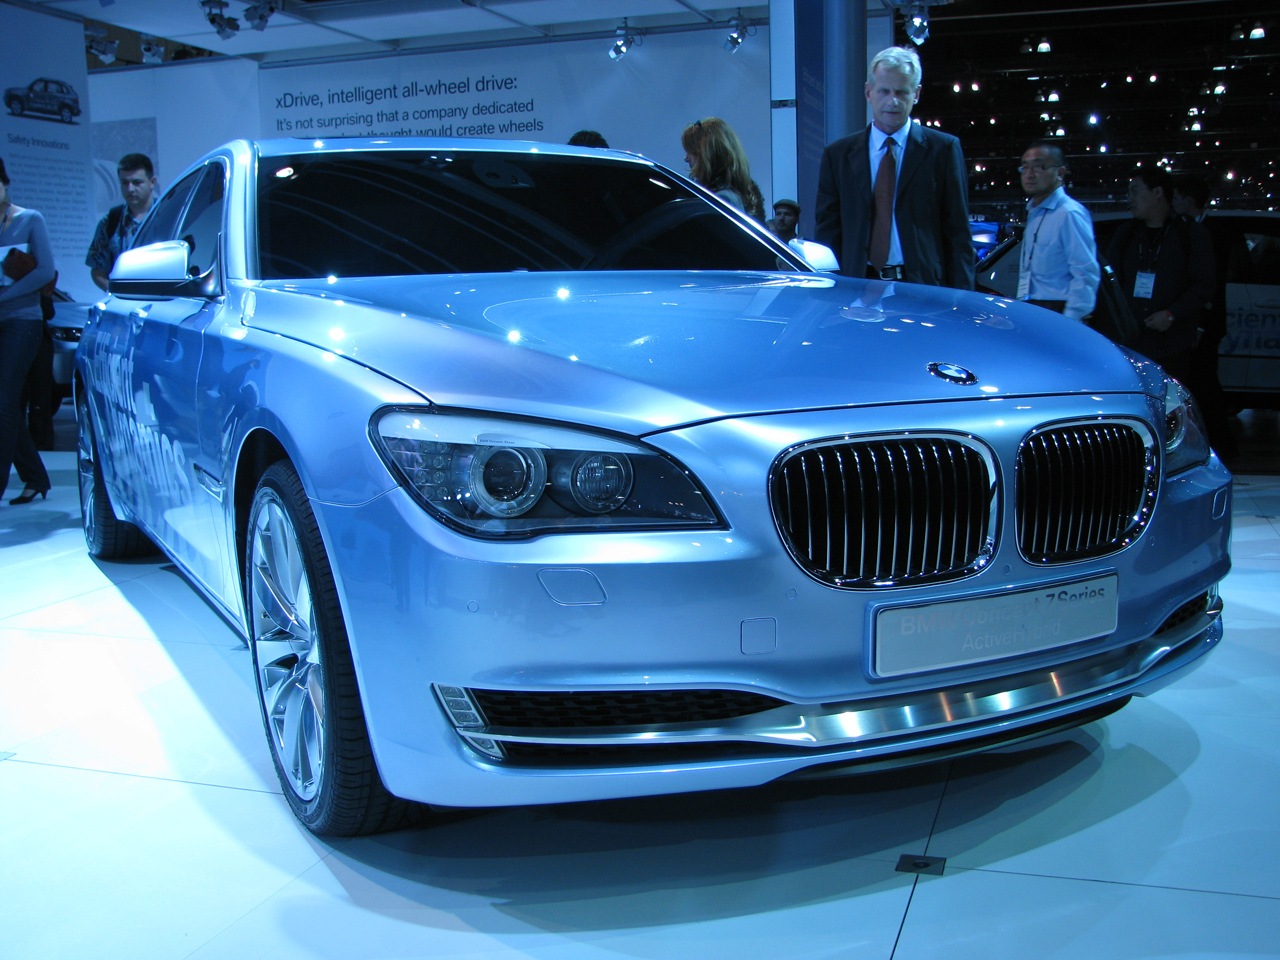 2017 BMW 7 Series ActiveHybrid Concept photo - 1